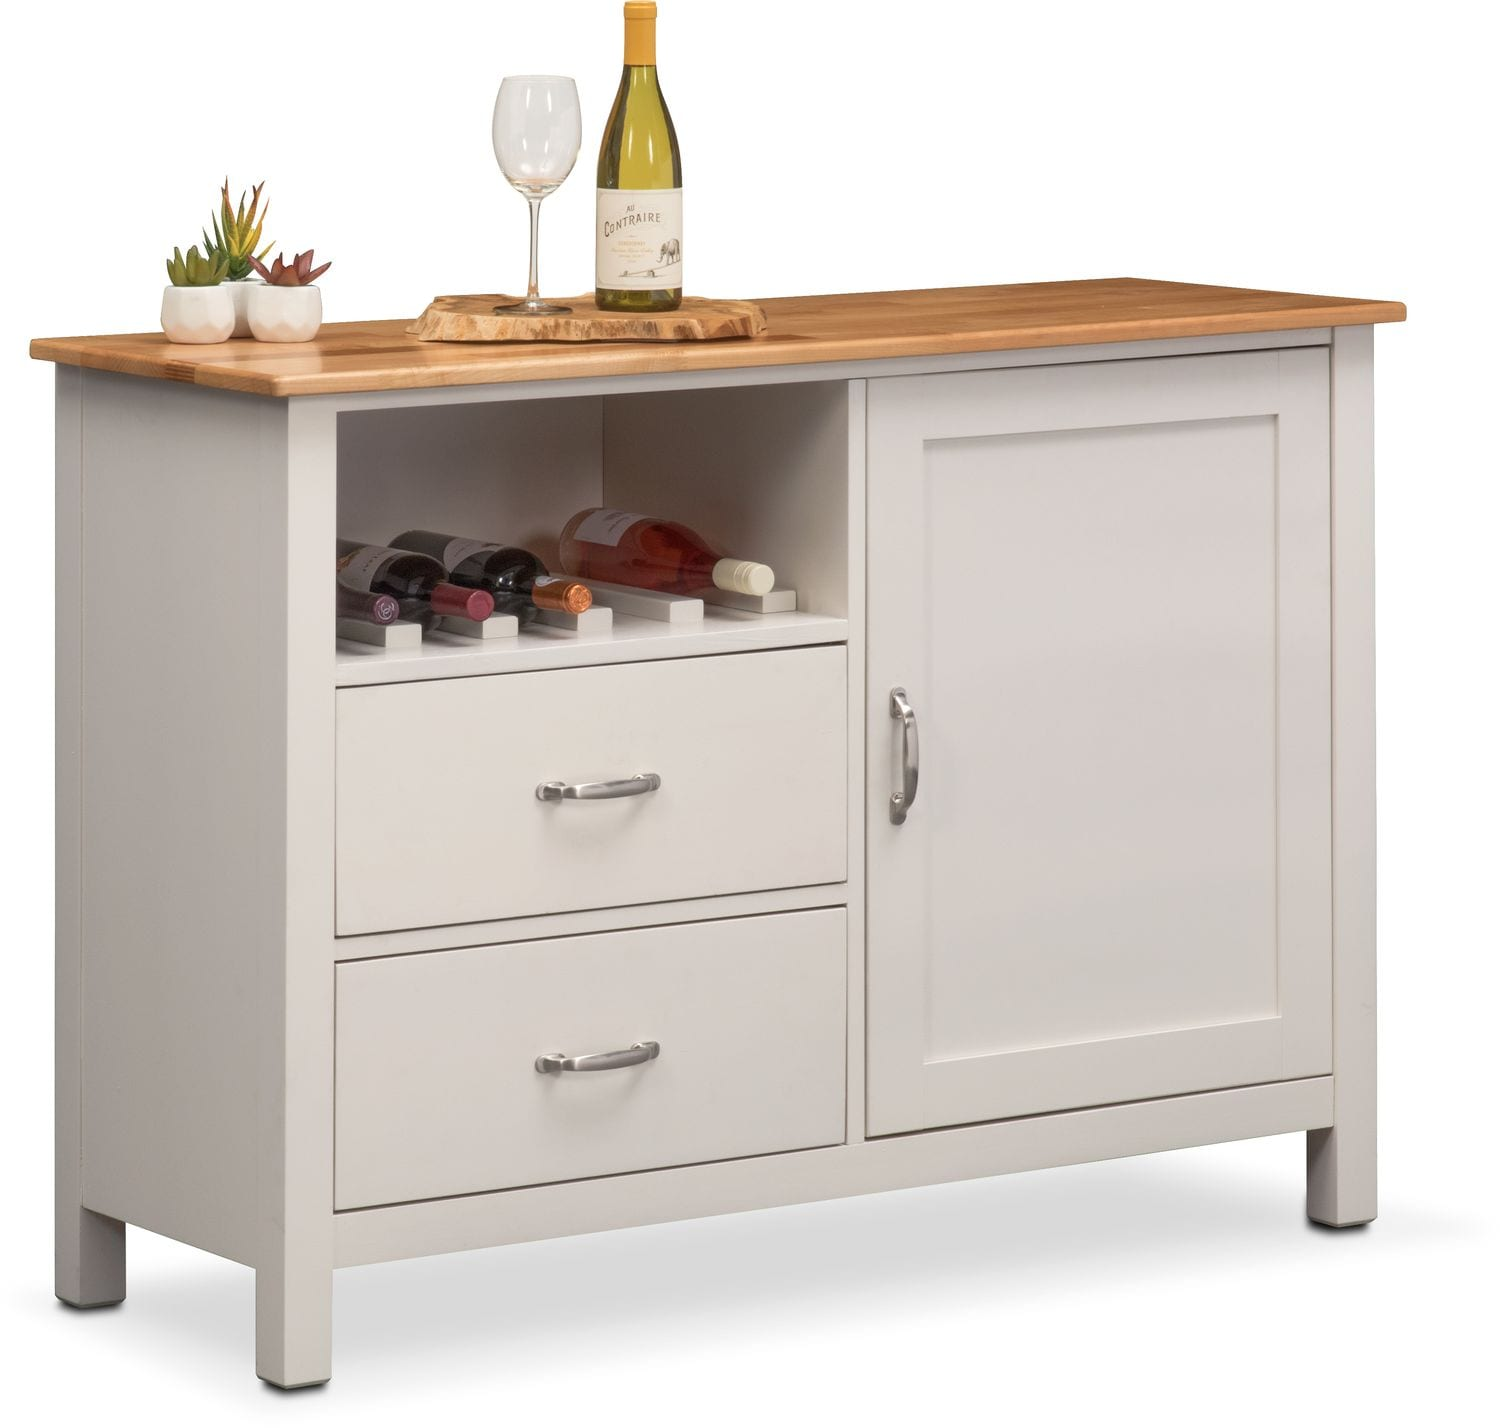 Delightful Dining Room Furniture   Nantucket Sideboard   Maple And White